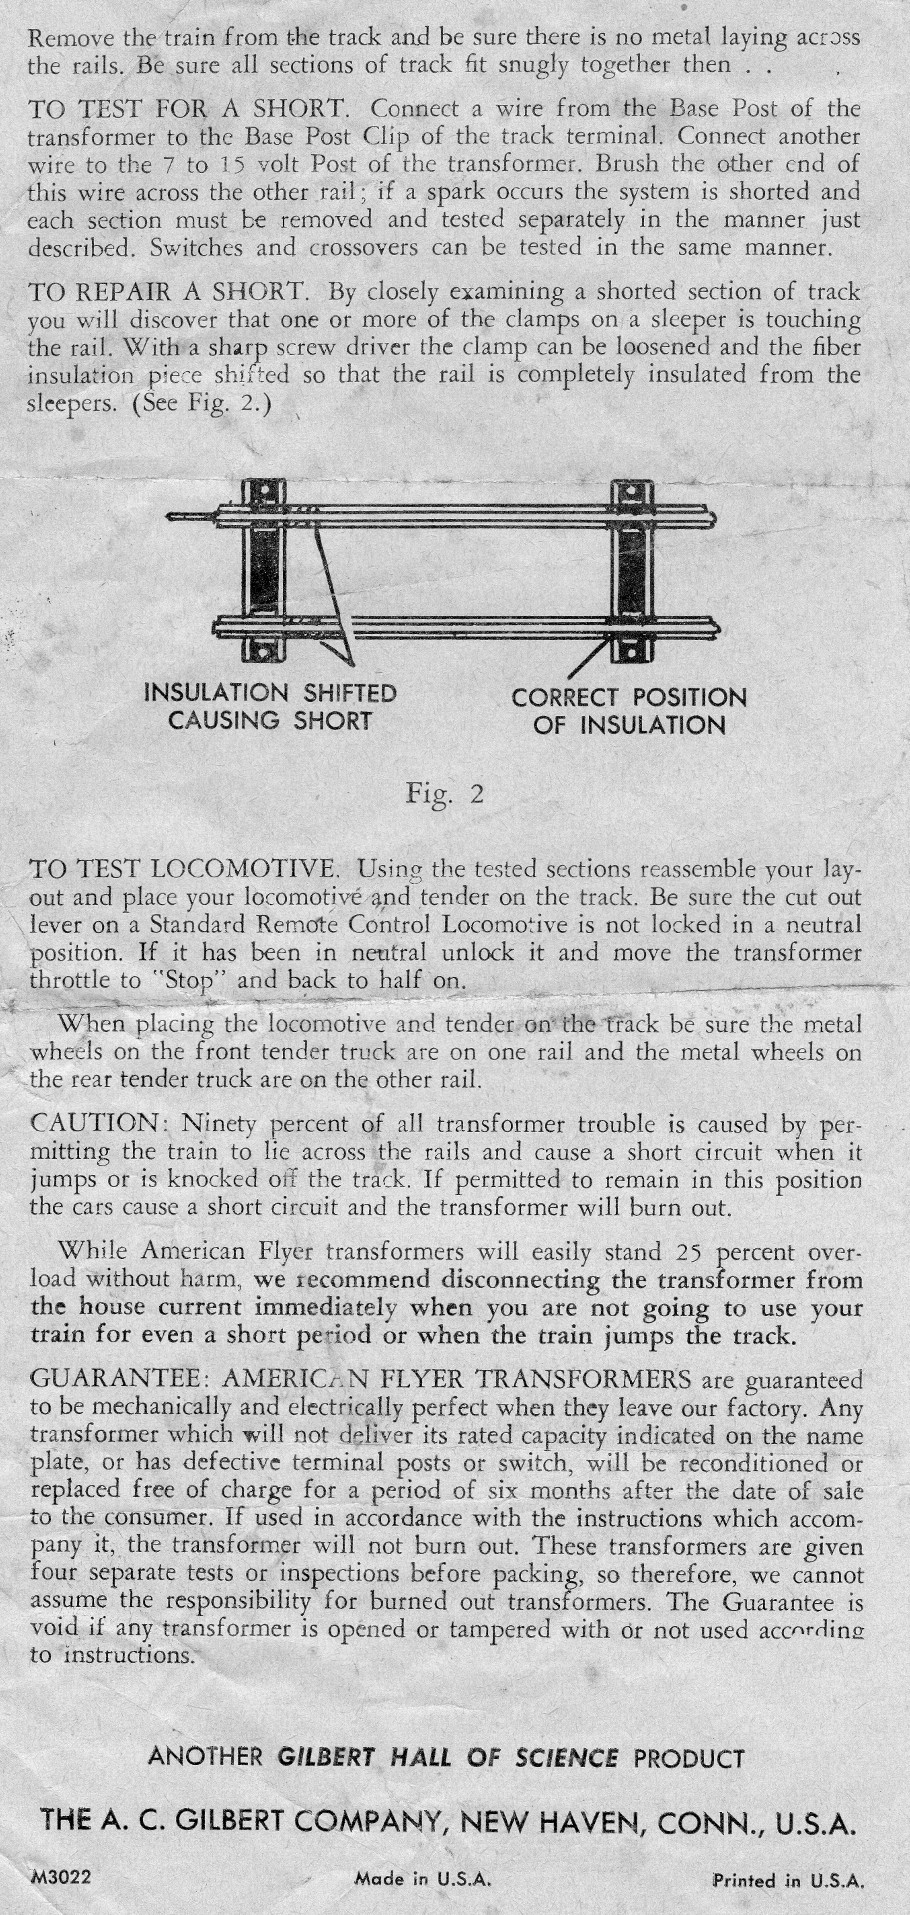 American Flyer No. 1½ - 45W Transformer Instructions - Page 2